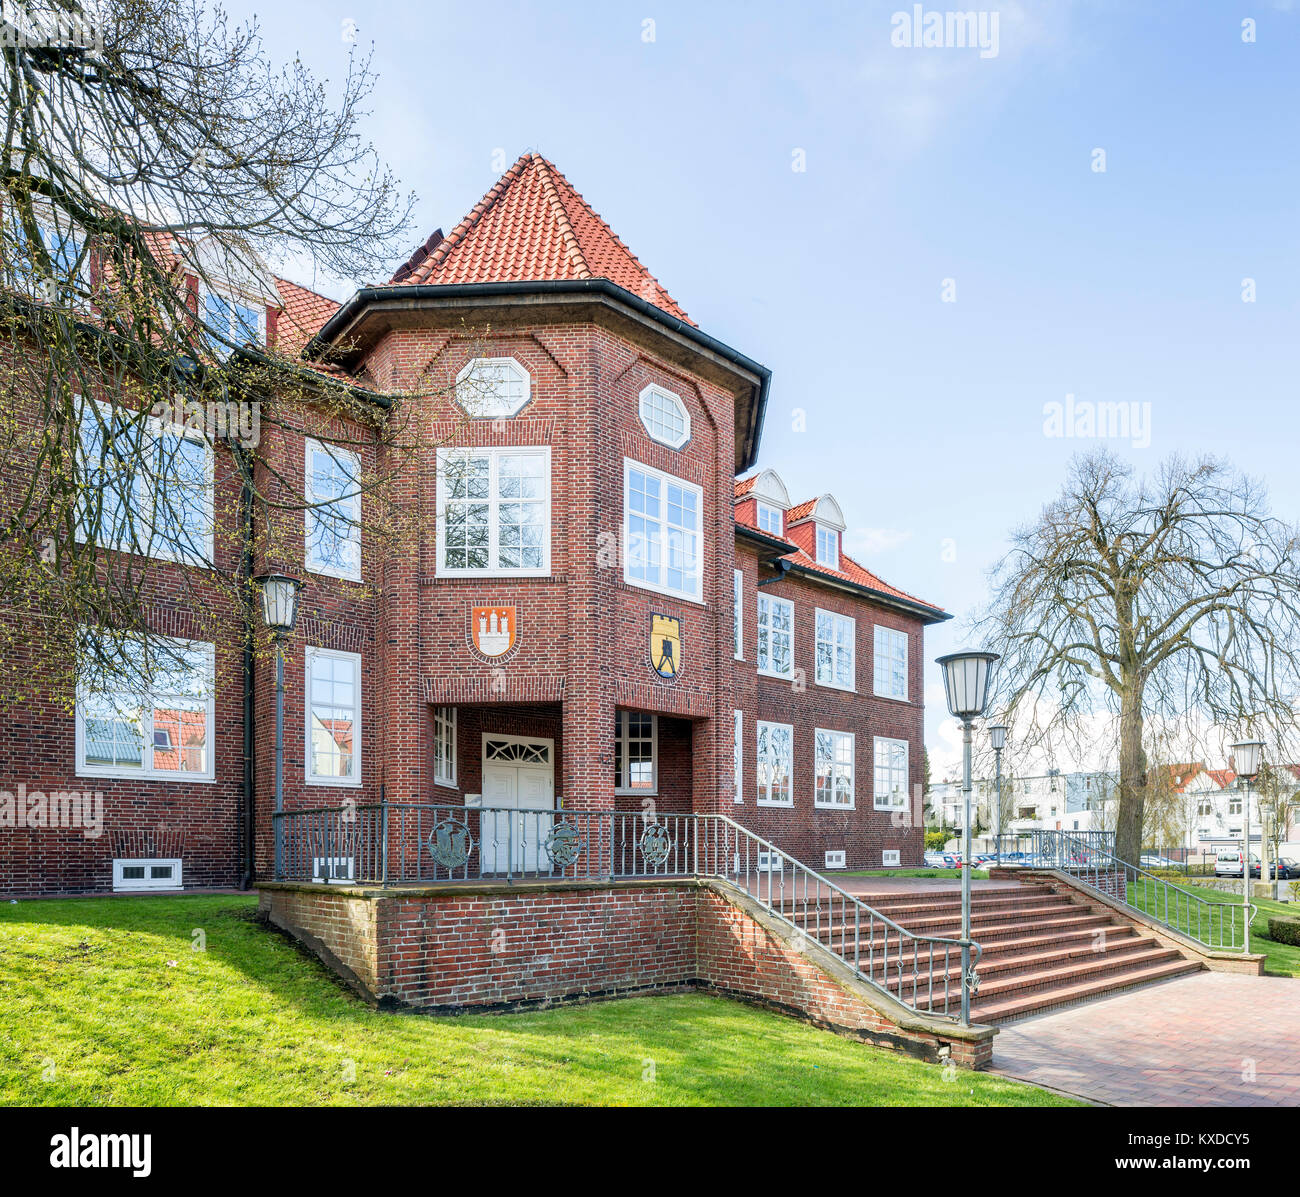 City Hall,Cuxhaven,Lower Saxony,Germany - Stock Image